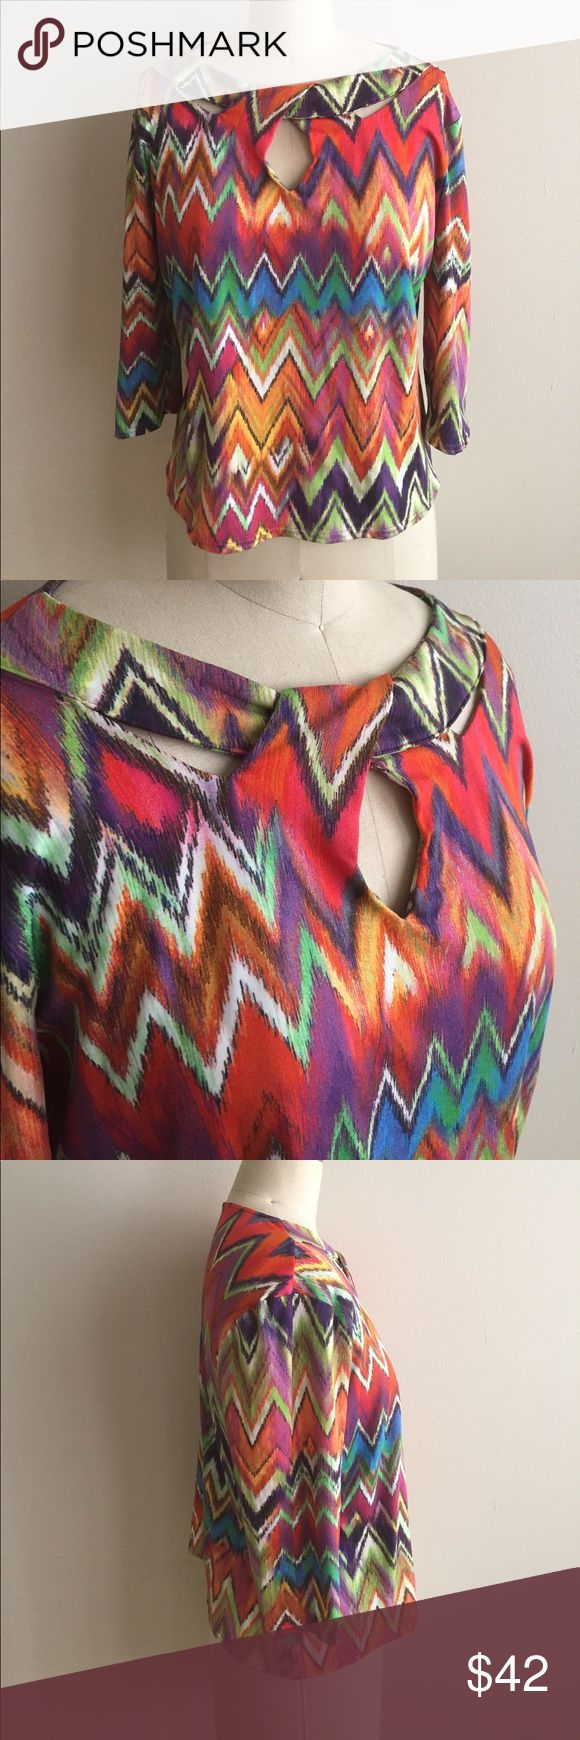 Bold Multi Color Dress with Abstract Print! NEW! Spandex Poly blend material, super comfortable! Made for night out, office, church or just a nice upgrade to your jeans and top combo. Measures 24 sleeves ( designed to fall near elbows) 22 from top to bottom, 44 bust. beccalexis Tops